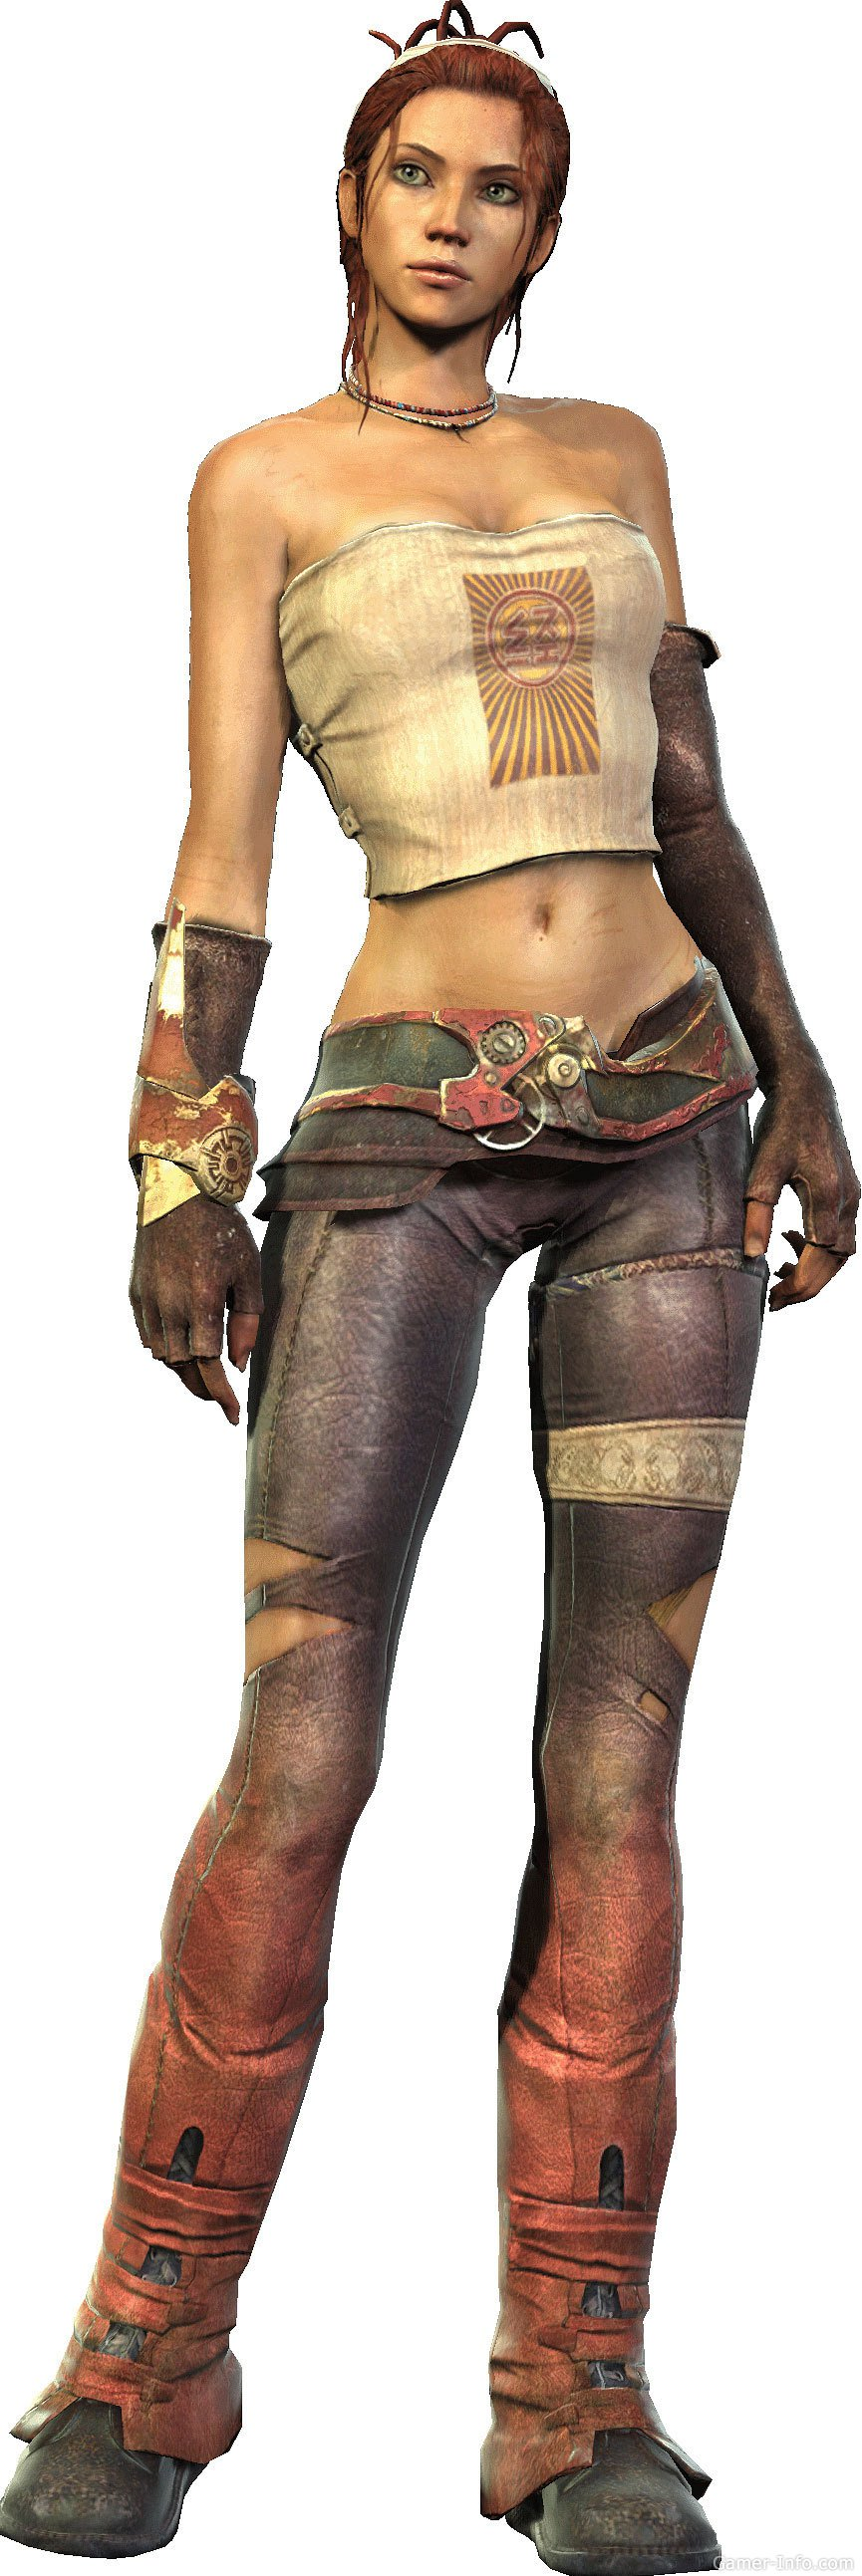 Enslaved odyssey to the west porn exploited picture